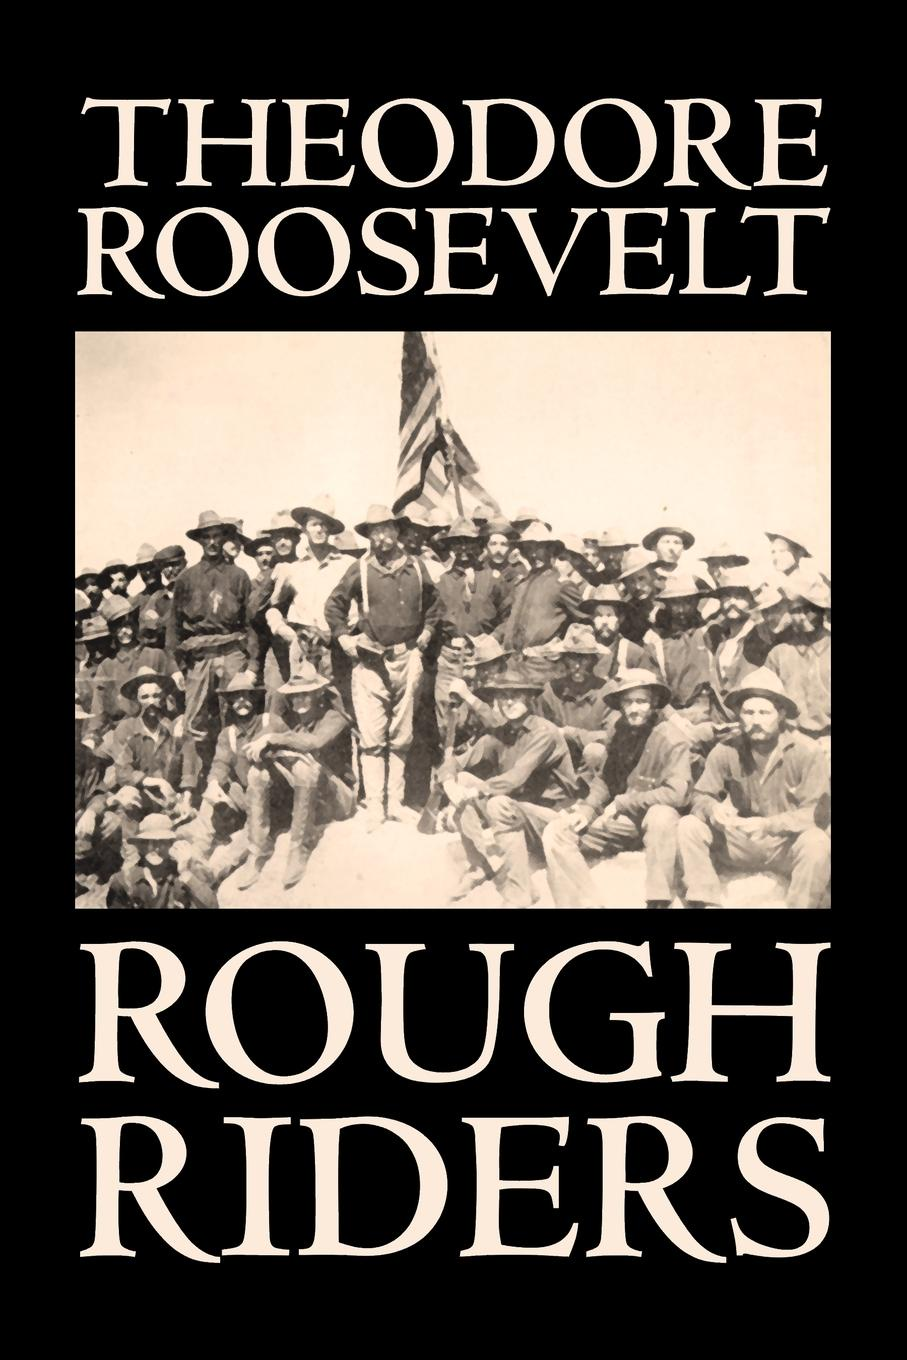 лучшая цена Theodore Roosevelt Rough Riders by Theodore Roosevelt, Biography & Autobiography - Historical